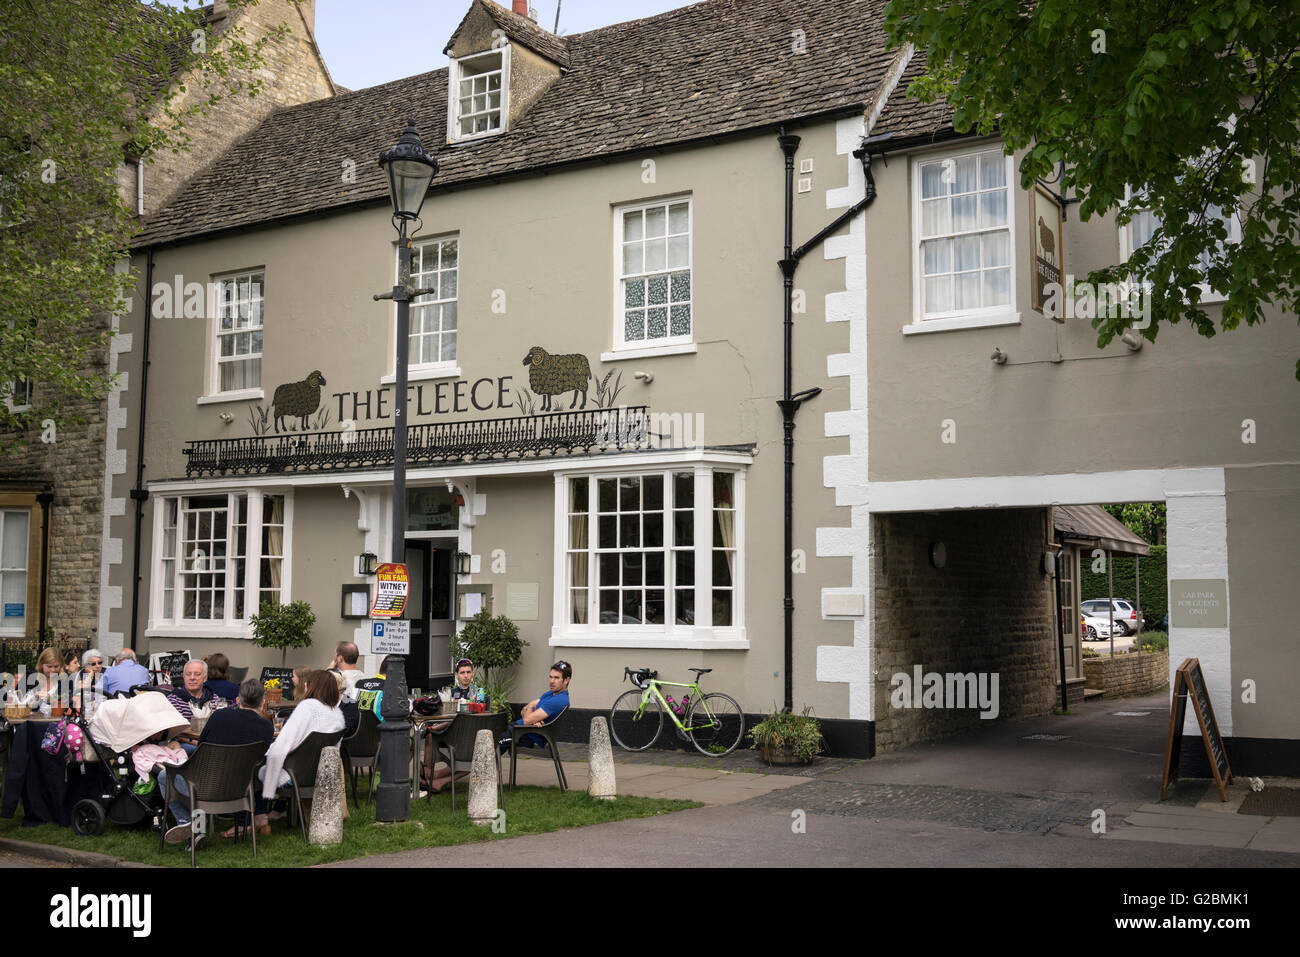 The Fleece gastro pub in Witney in Oxfordshire - Stock Image